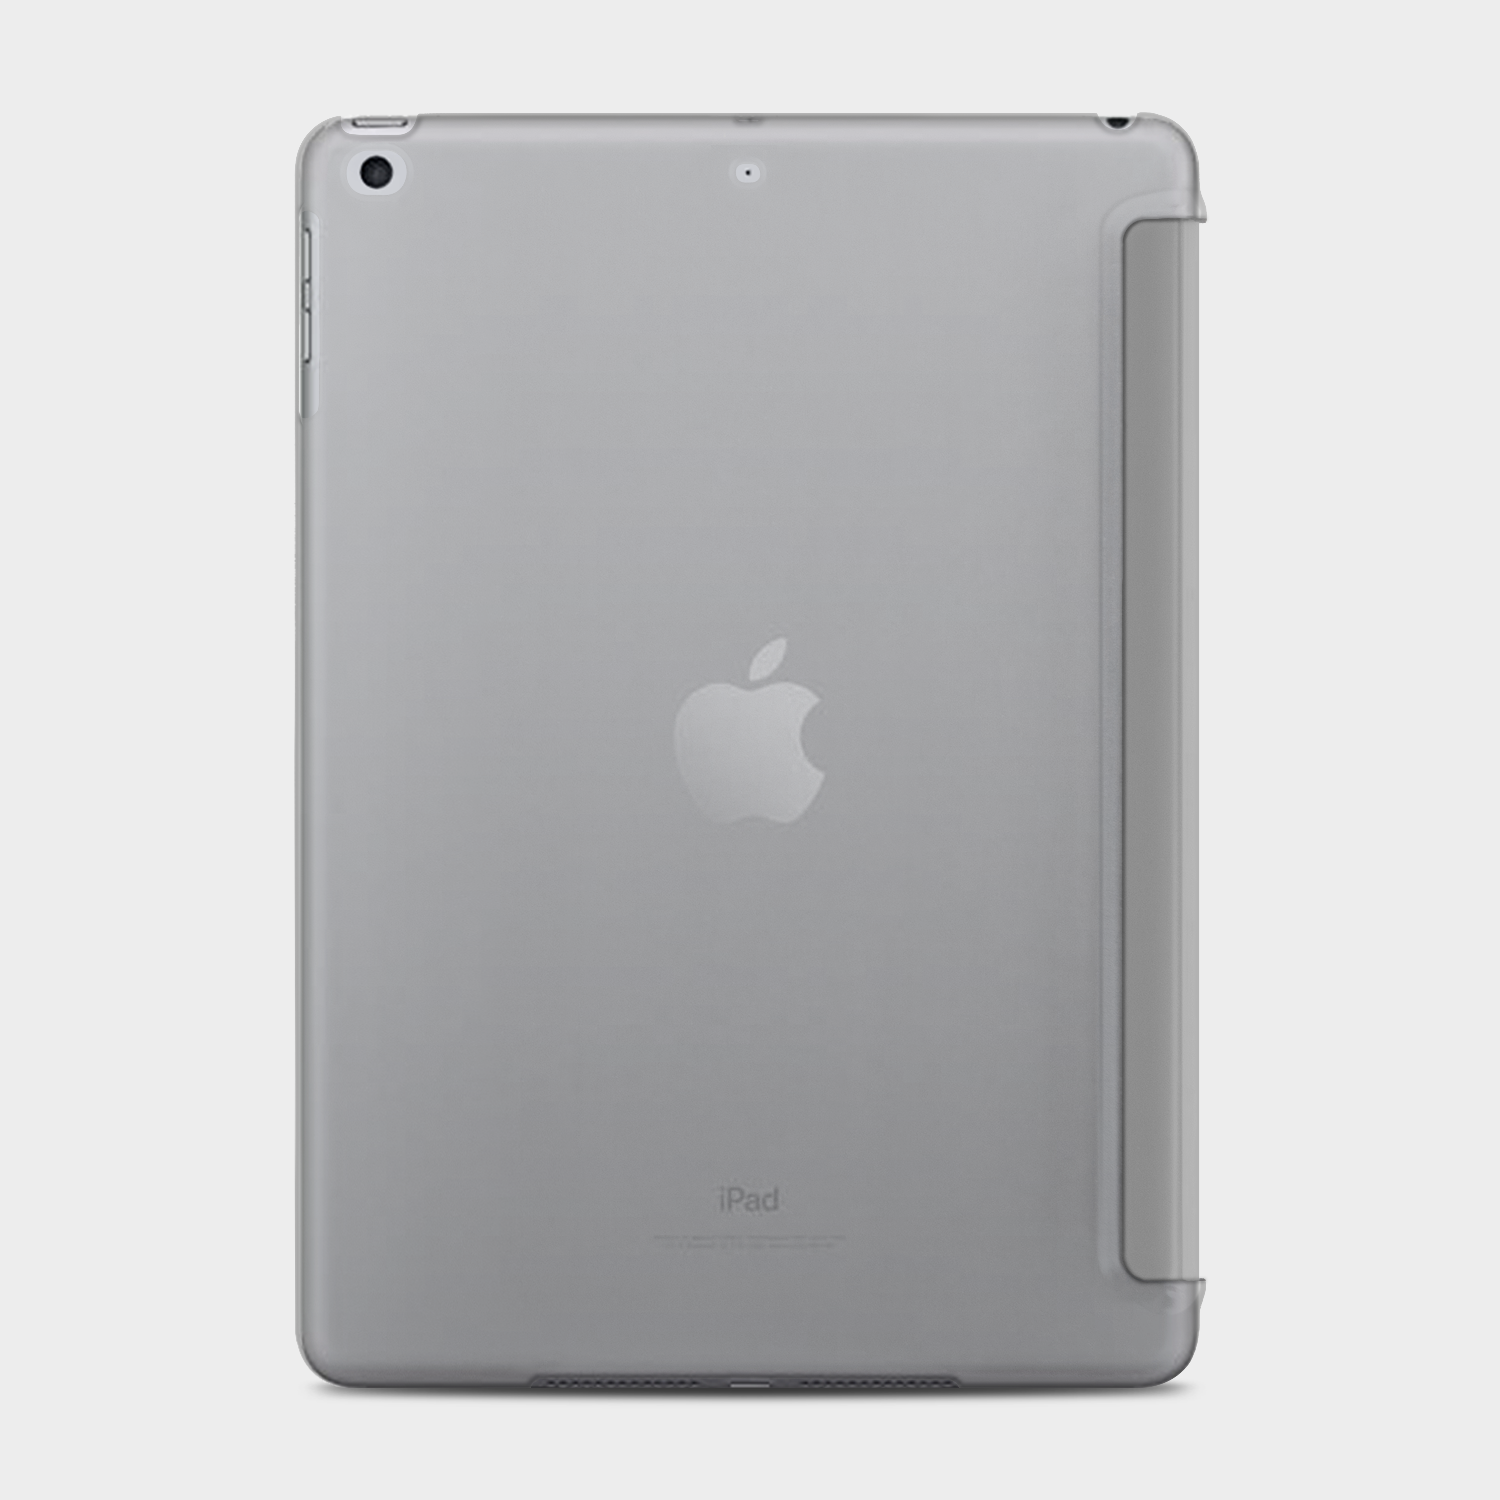 Apple iPad Mini 2 case clear back | Pigtou